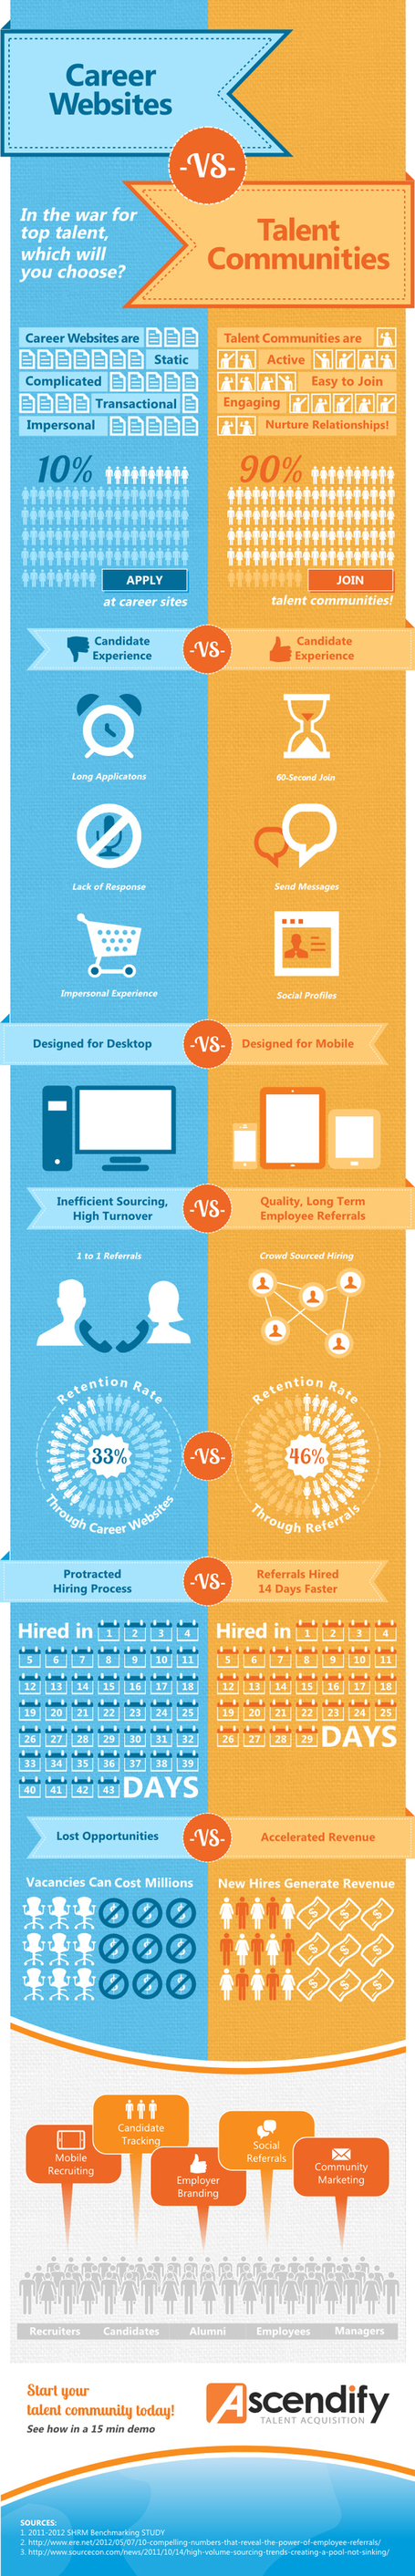 Talent Communities vs Career Websites: Which is Better? [INFOGRAPHIC] | Recruiting with Social Media | Scoop.it